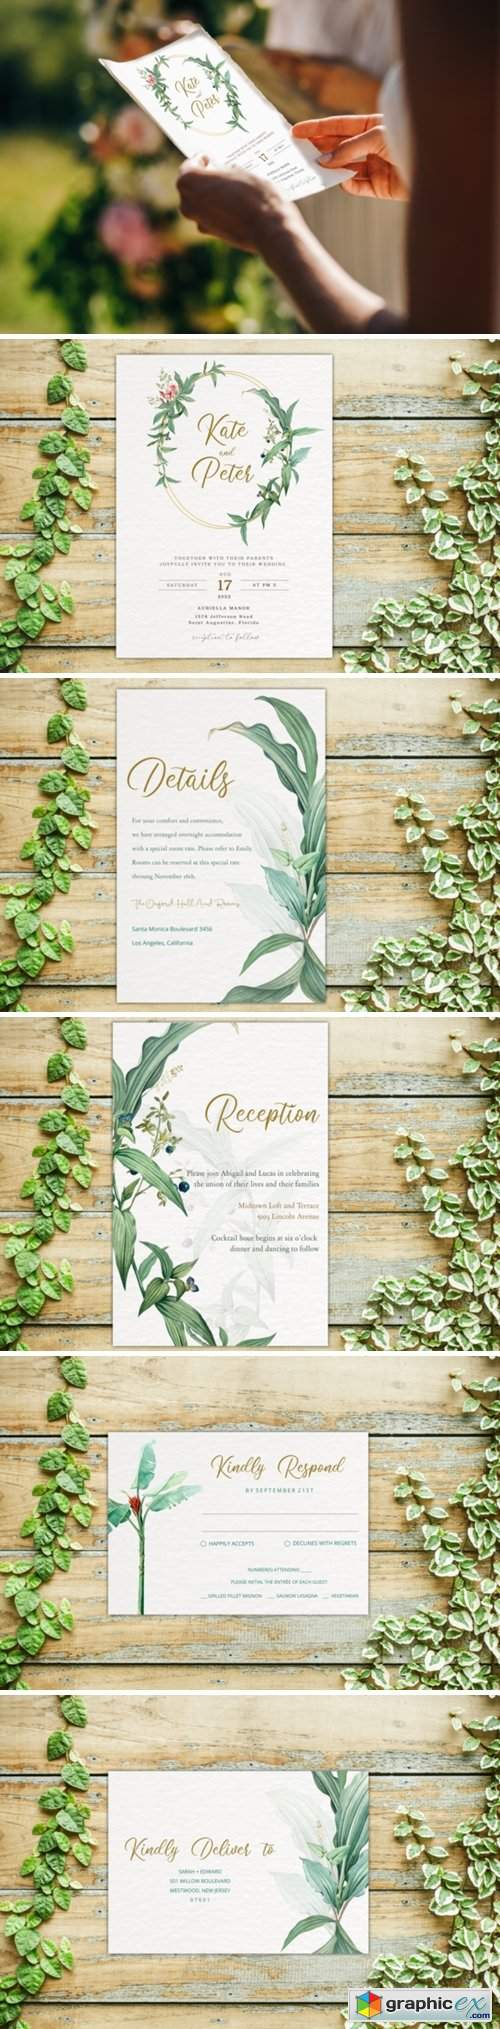 Greenery Wedding Invitation Template Set